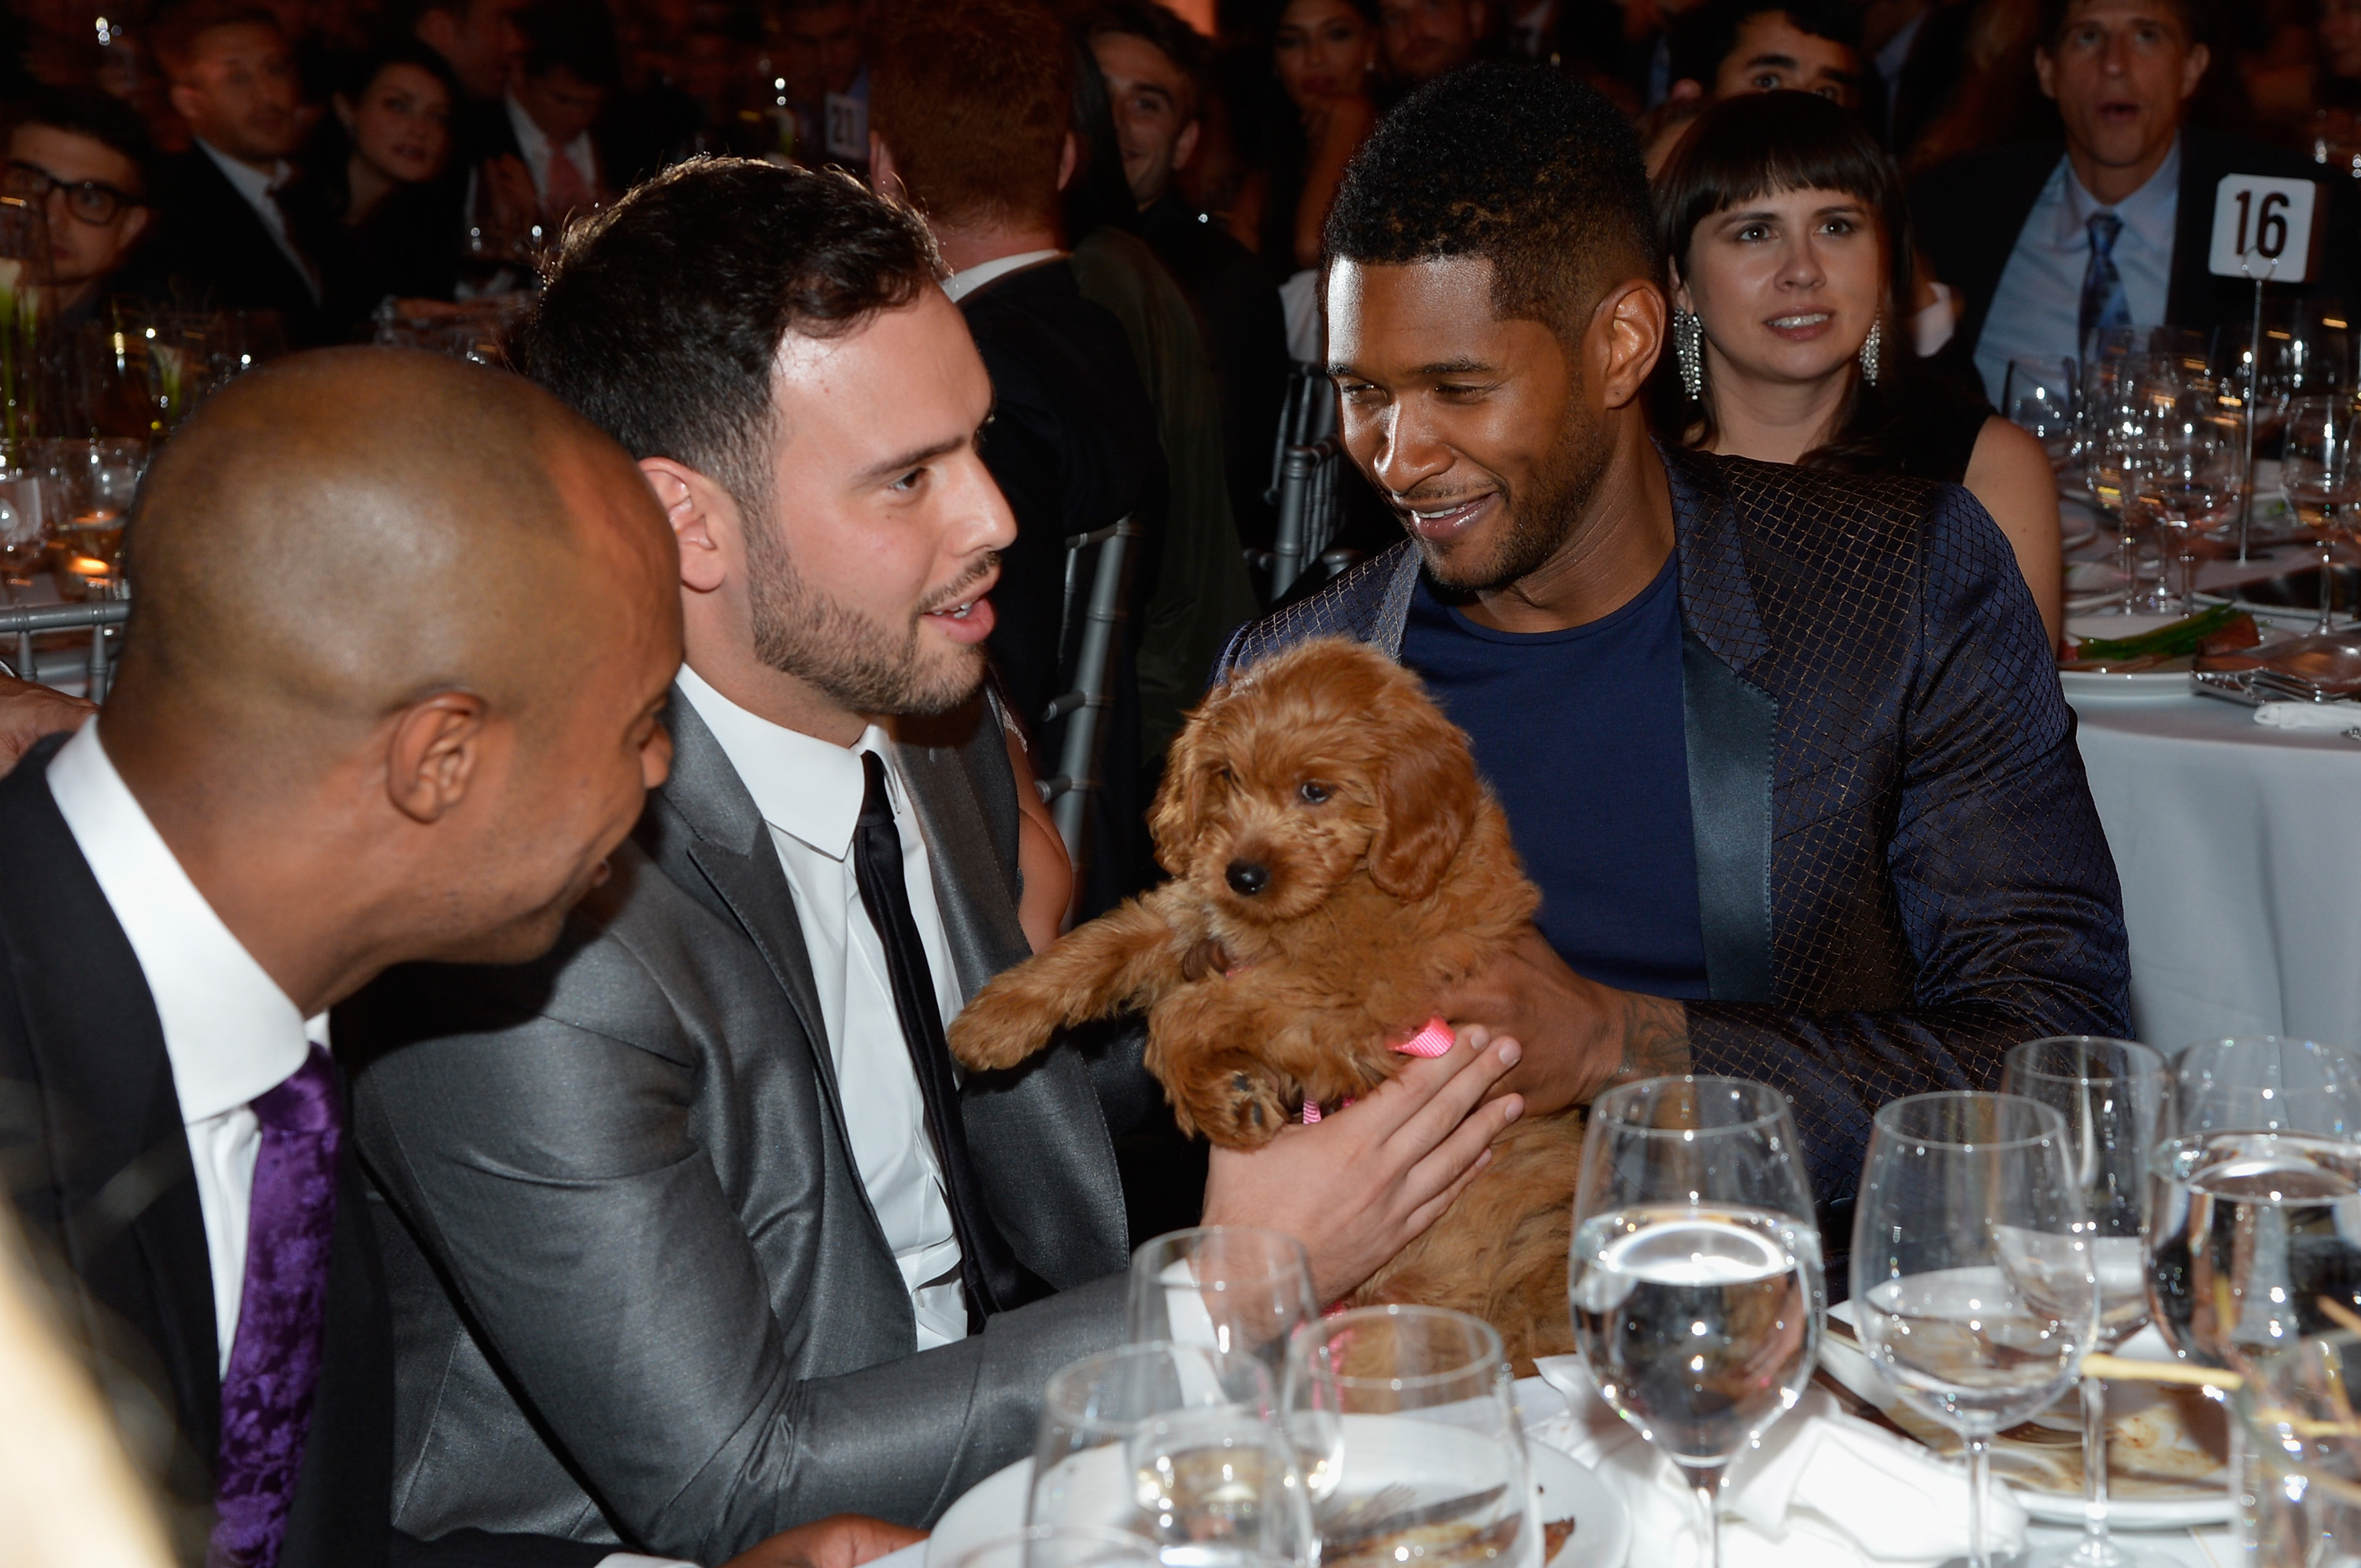 Usher let Scooter Braun hold his new puppy.